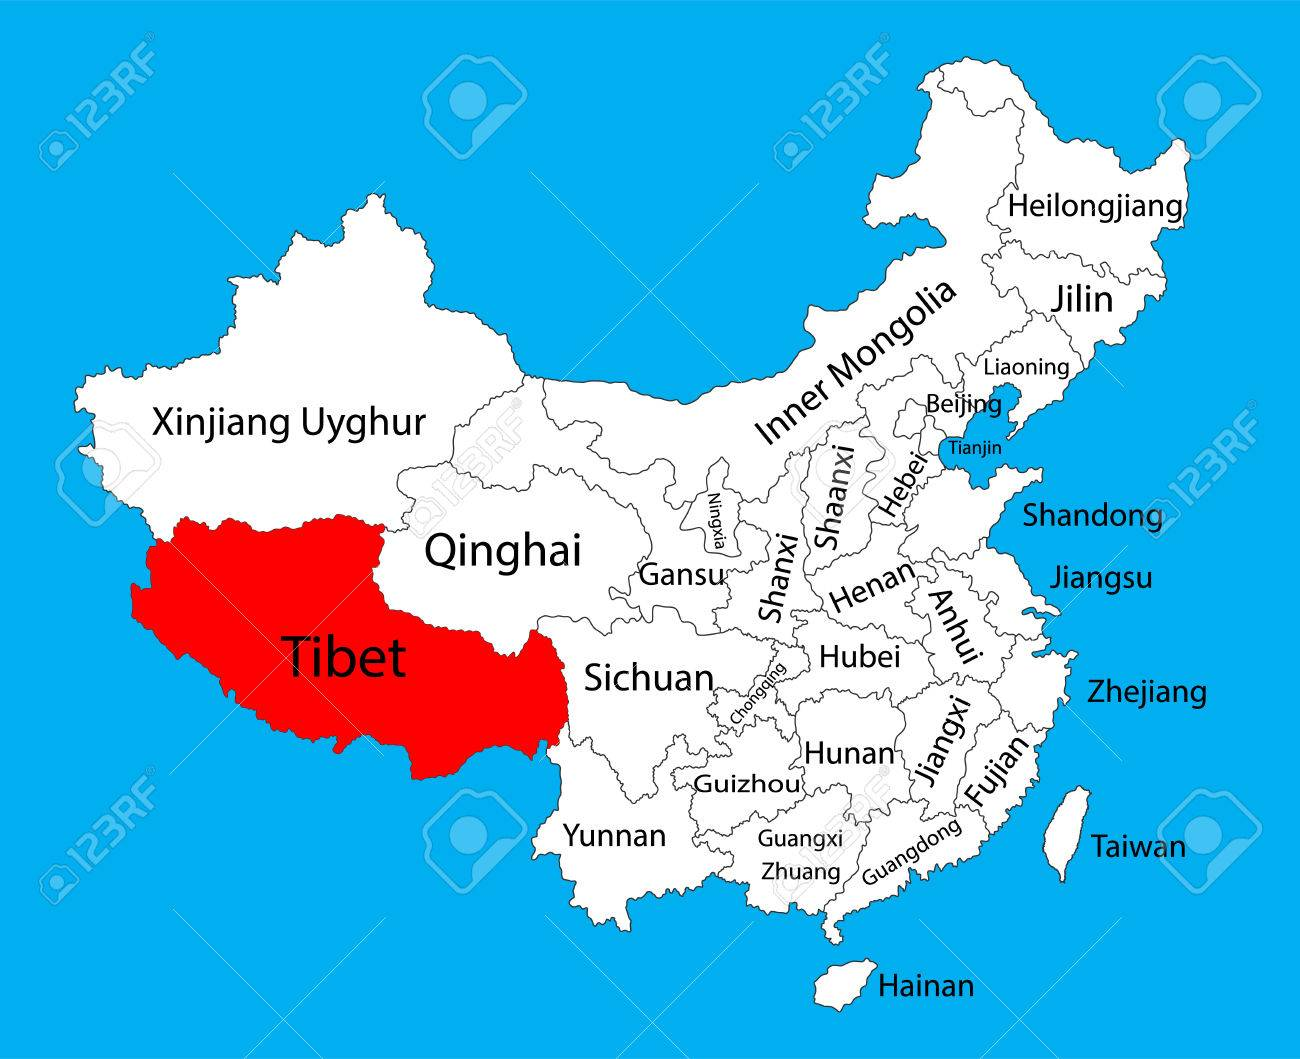 Tibet Province Map China Vector Map Illustration Isolated On